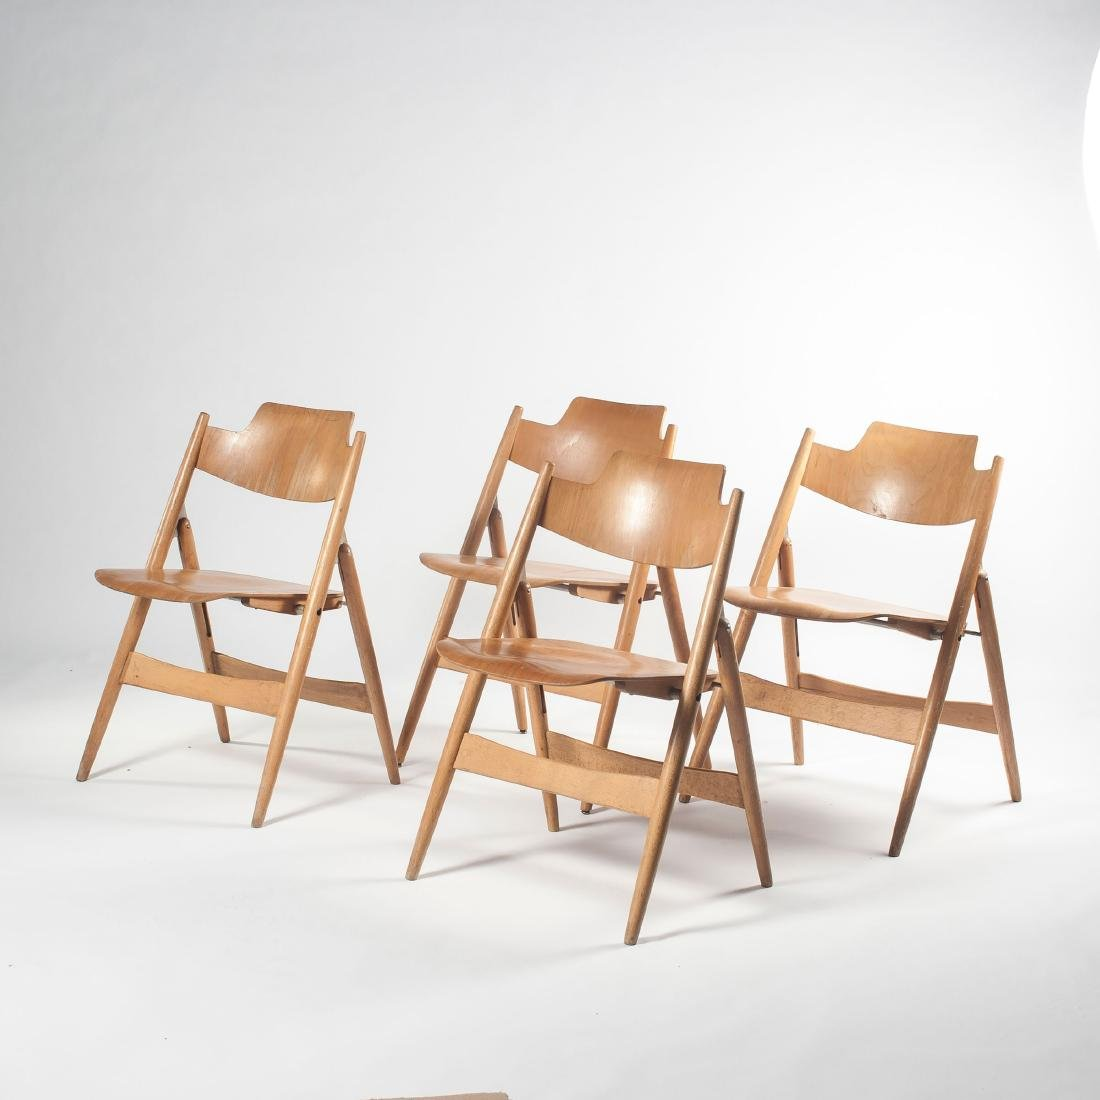 Six 'SE 18' folding chairs, 1953 - 7